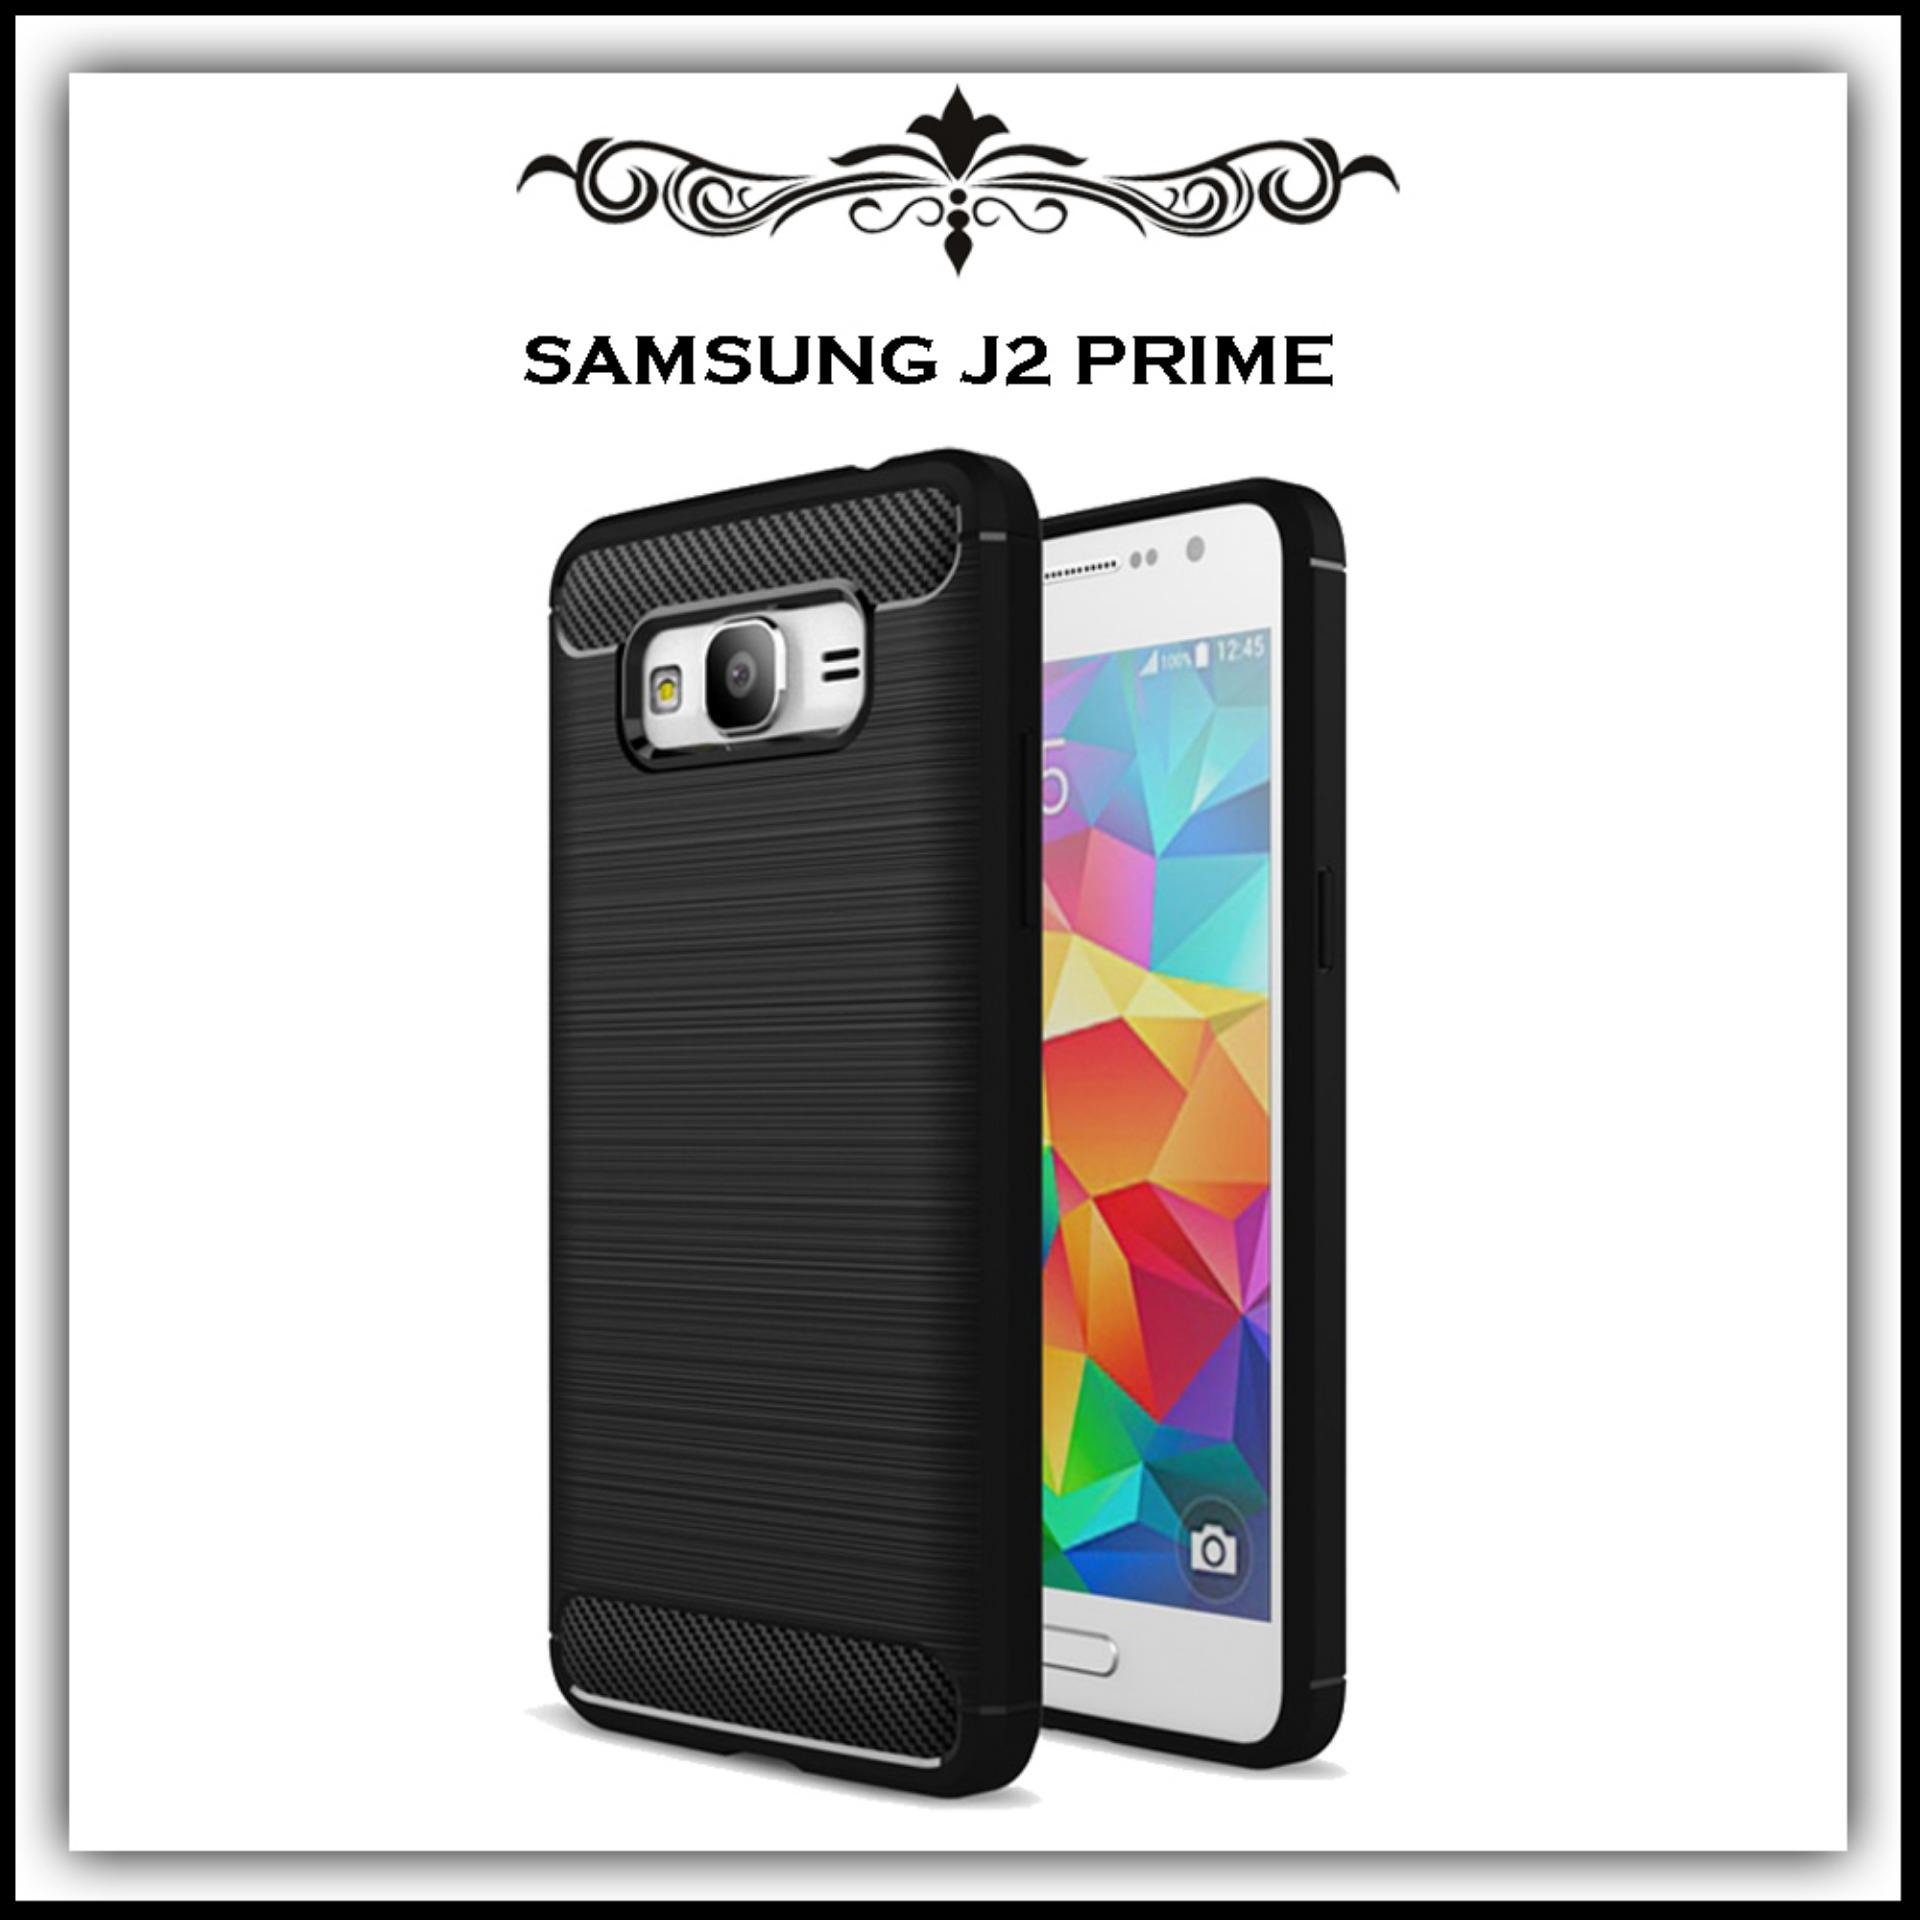 Mushroom Case Ipaky Carbon Fiber Shockproof Hybrid Elegant Case for Samsung Galaxy J2 Prime / G530